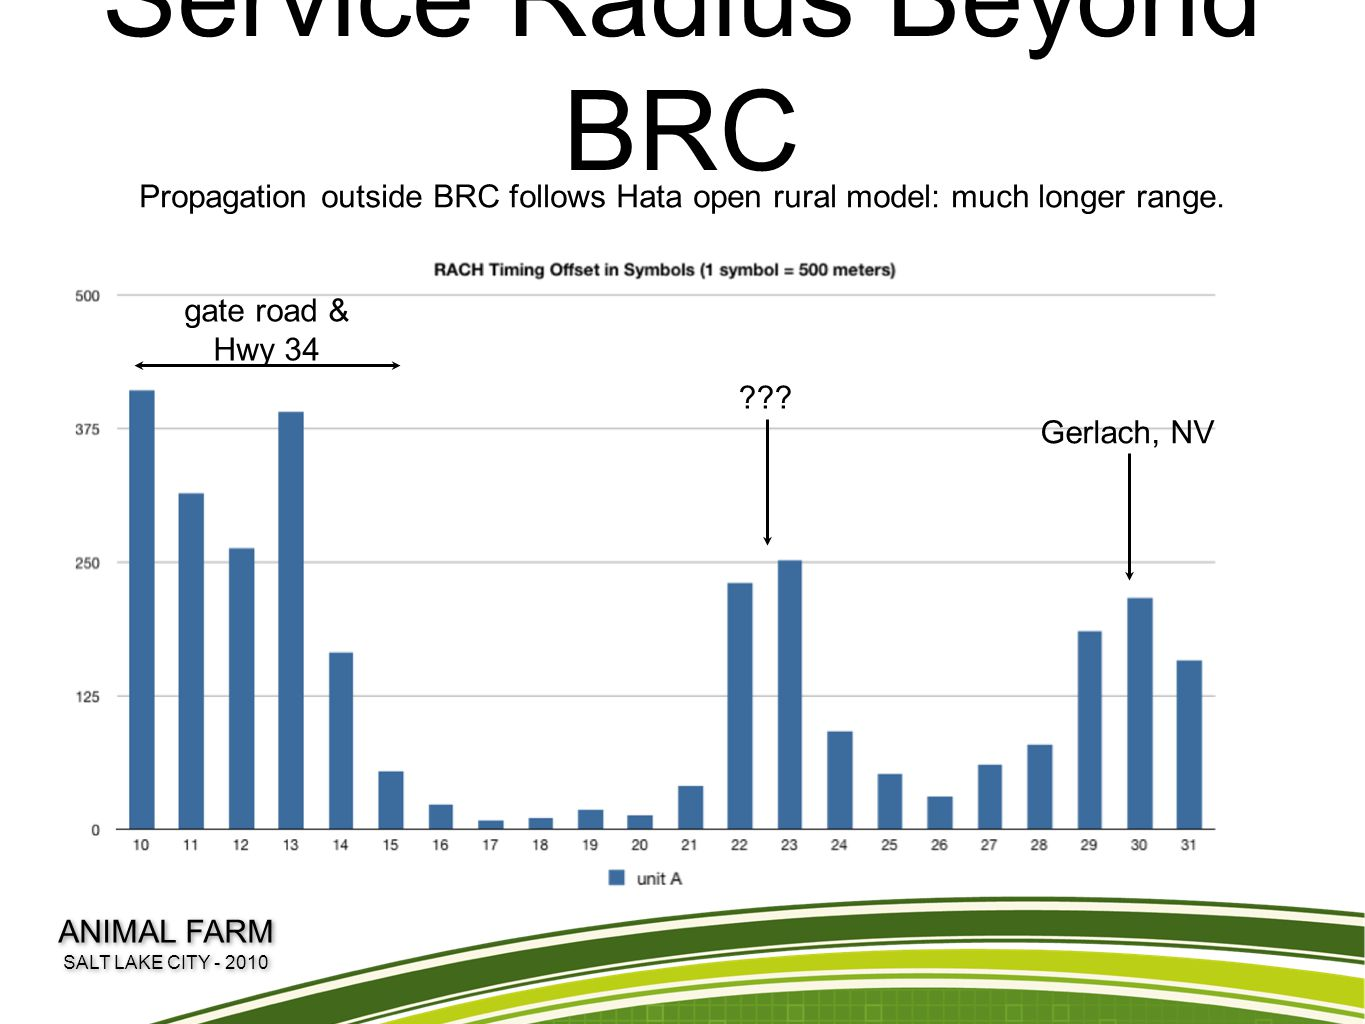 Service Radius Beyond BRC Propagation outside BRC follows Hata open rural model: much longer range. gate road & Hwy 34 ??? Gerlach, NV ANIMAL FARM SAL